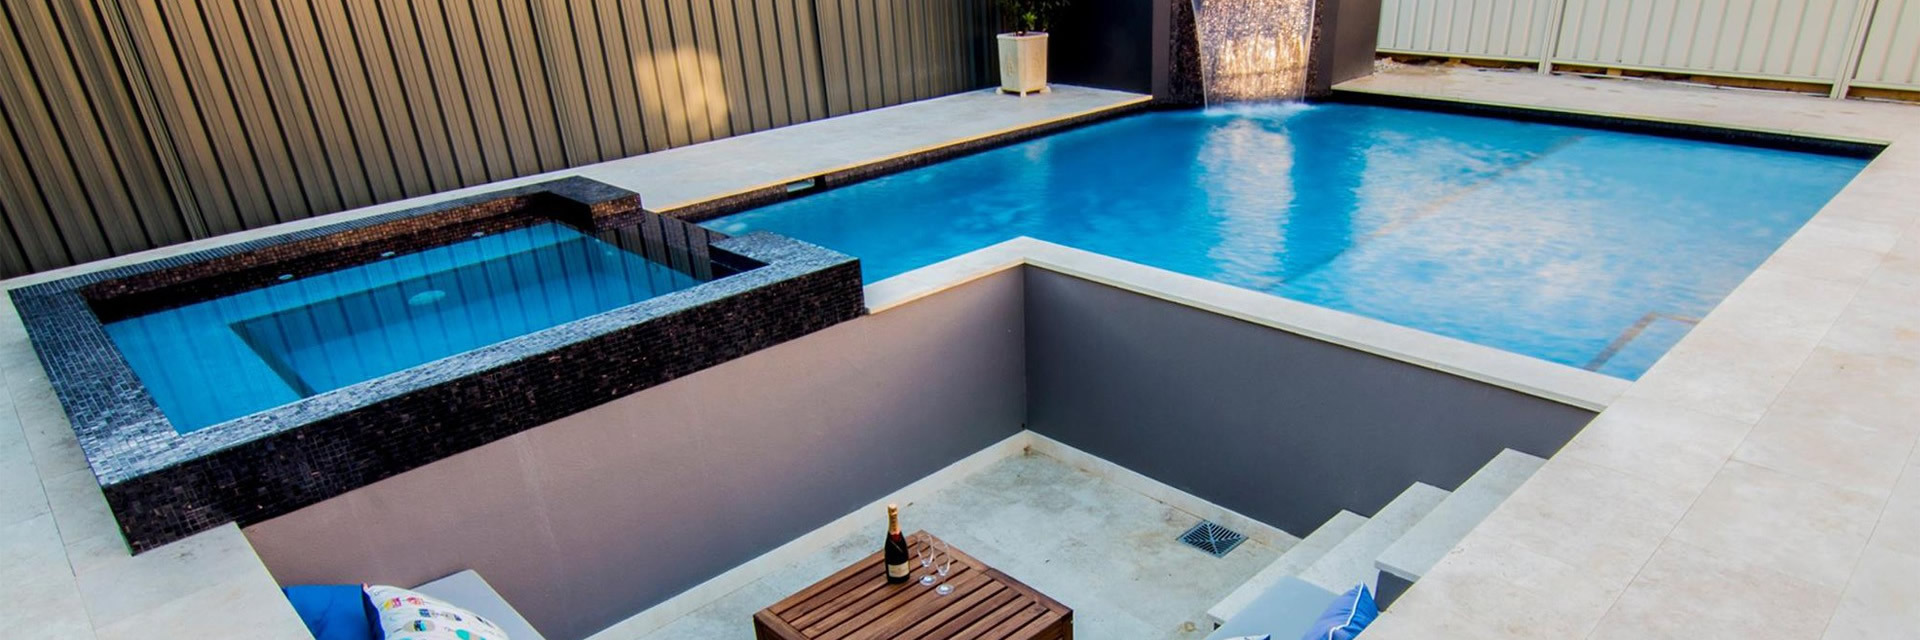 Builders Of High Quality Individually Designed Concrete Swimming Pools In Perth And Regional